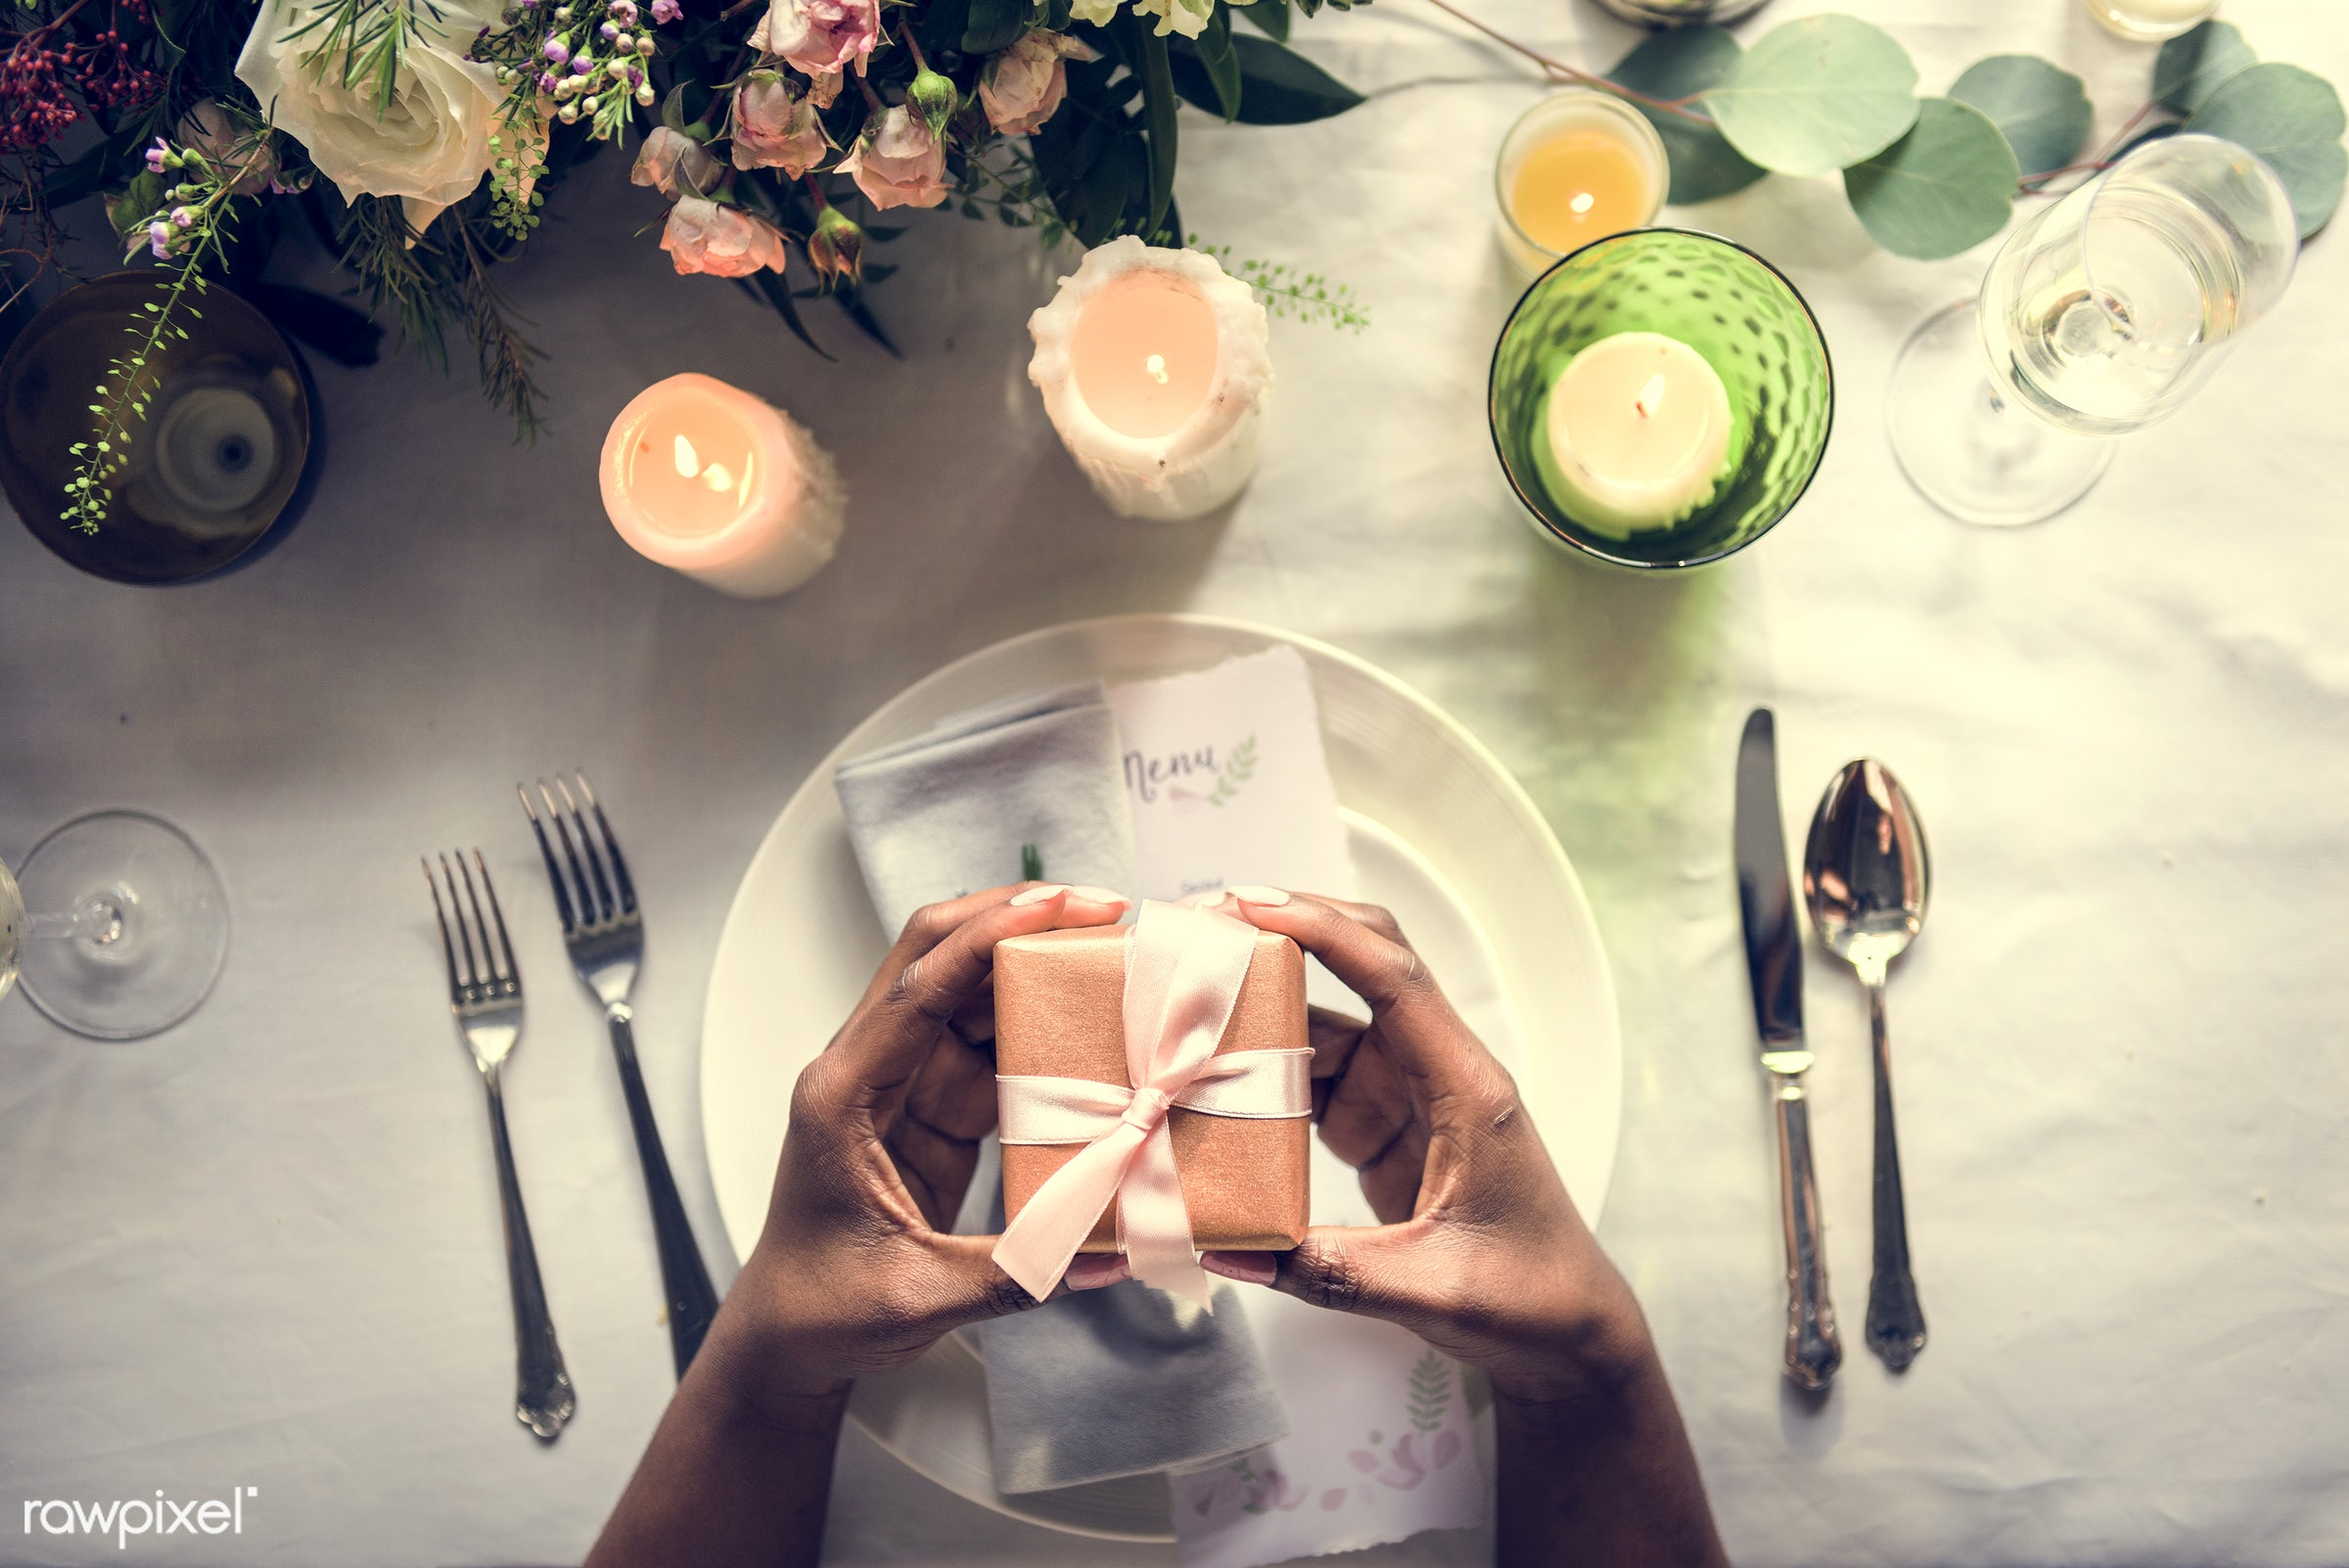 gift, ornate, catering, silverware, restaurant, party, setting, decor, candle, tablecloth, event, banquet, lunch, meal,...